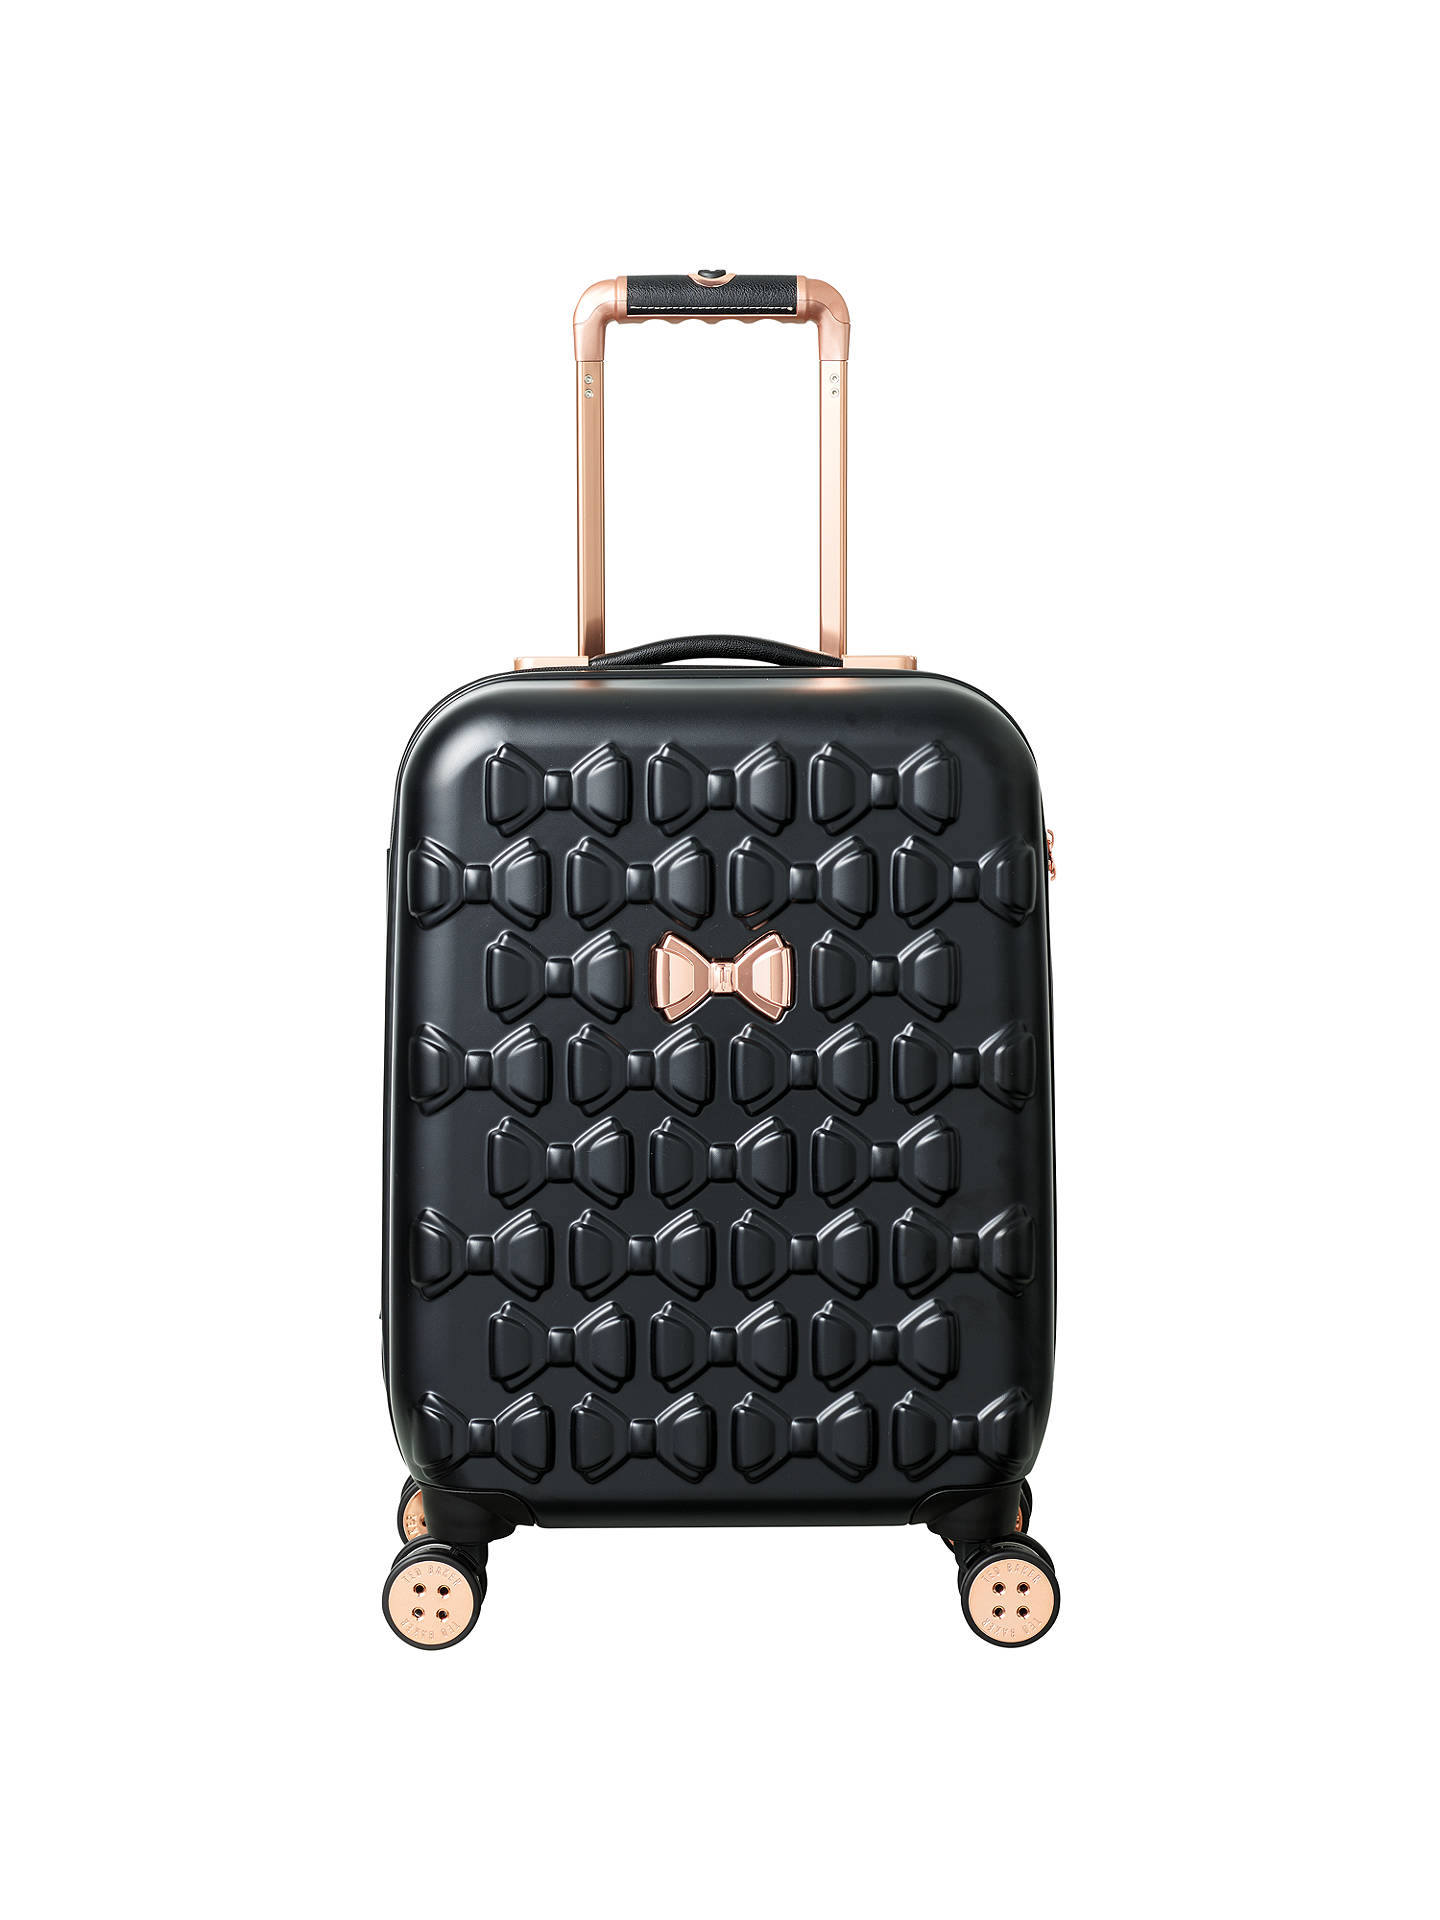 8456be6bbb4845 Ted Baker Beau 54cm 4-Wheel Cabin Suitcase at John Lewis   Partners